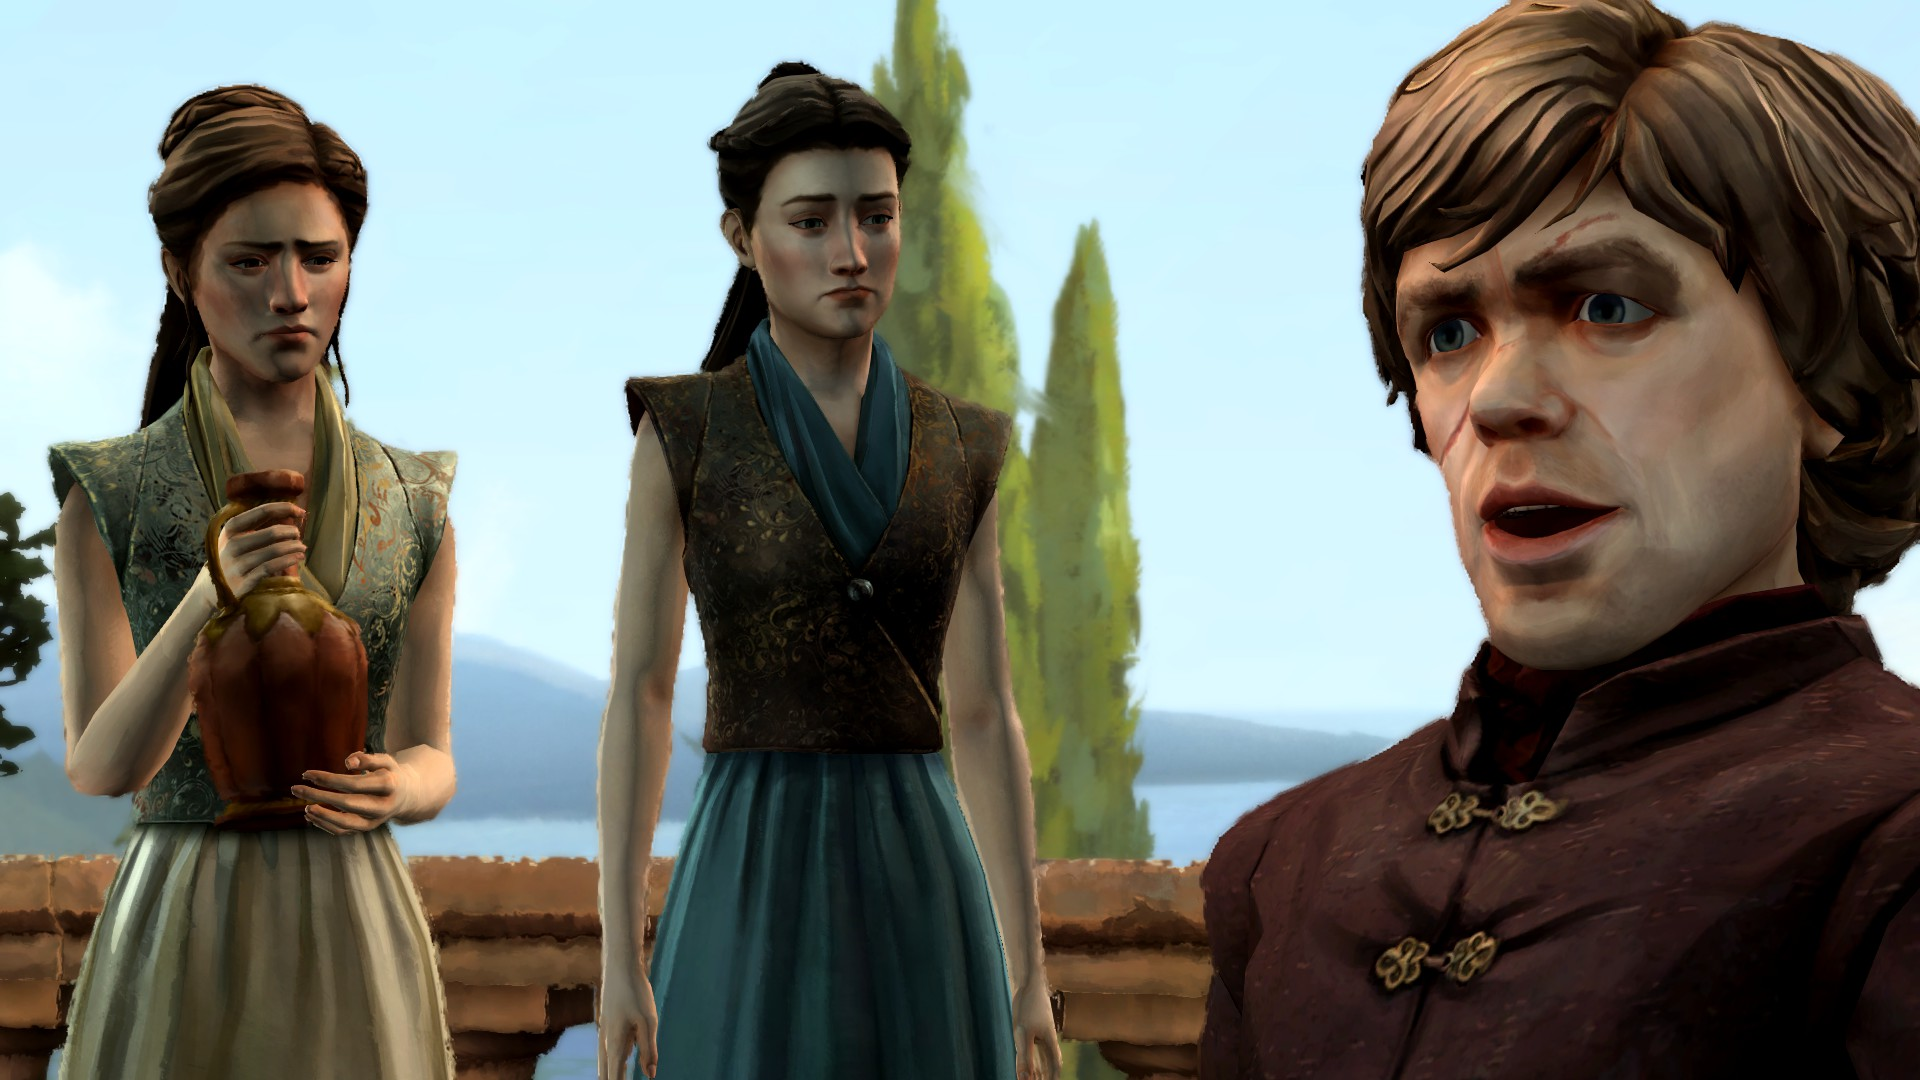 Game of Thrones - A Telltale Games Series: The Lost Lords